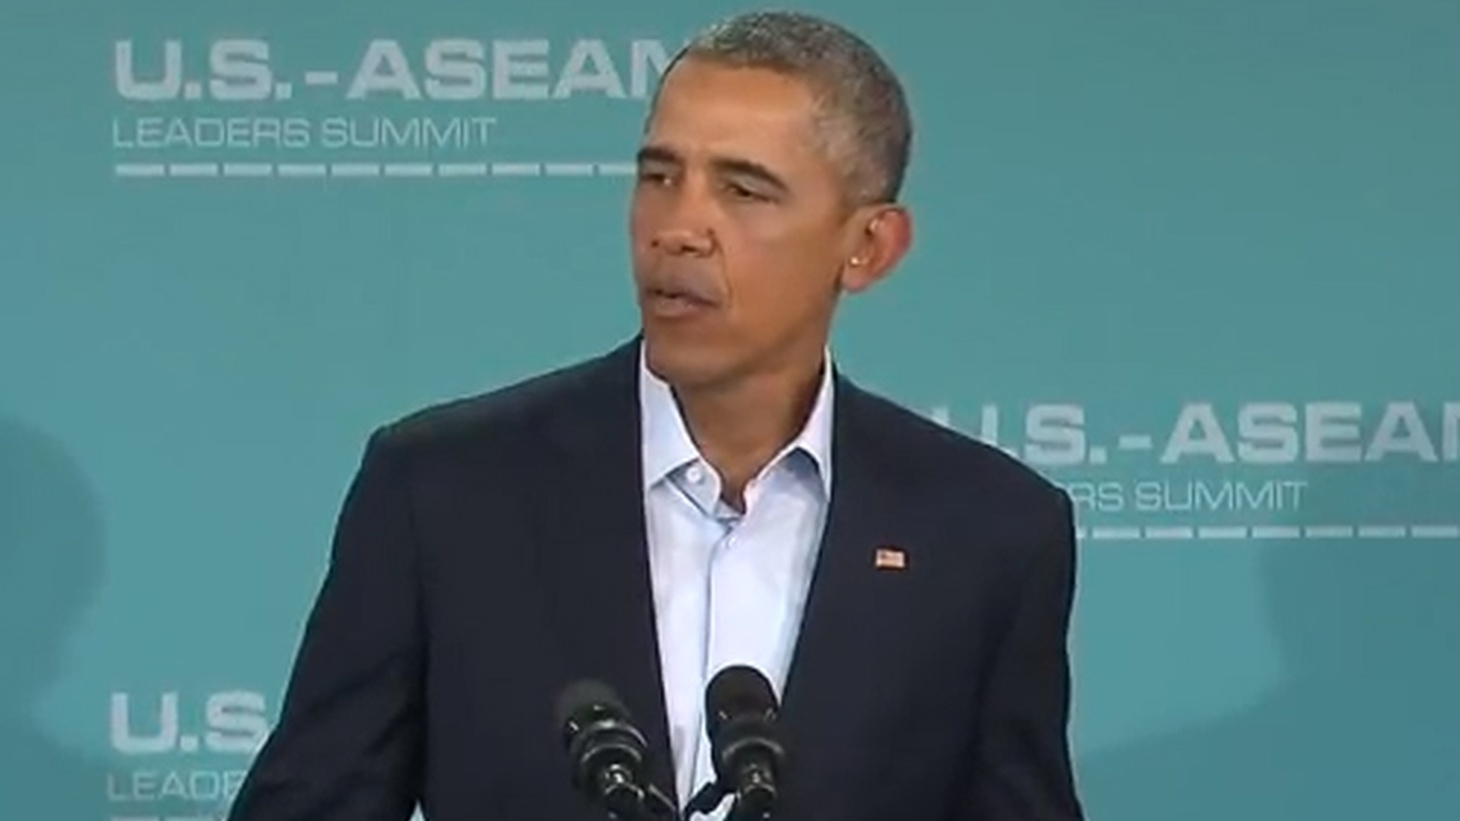 Today, Tuesday, February 16 at 1:30pm PST,President Obama will hold a press conference to discussthe results of the ASEAN Summit.